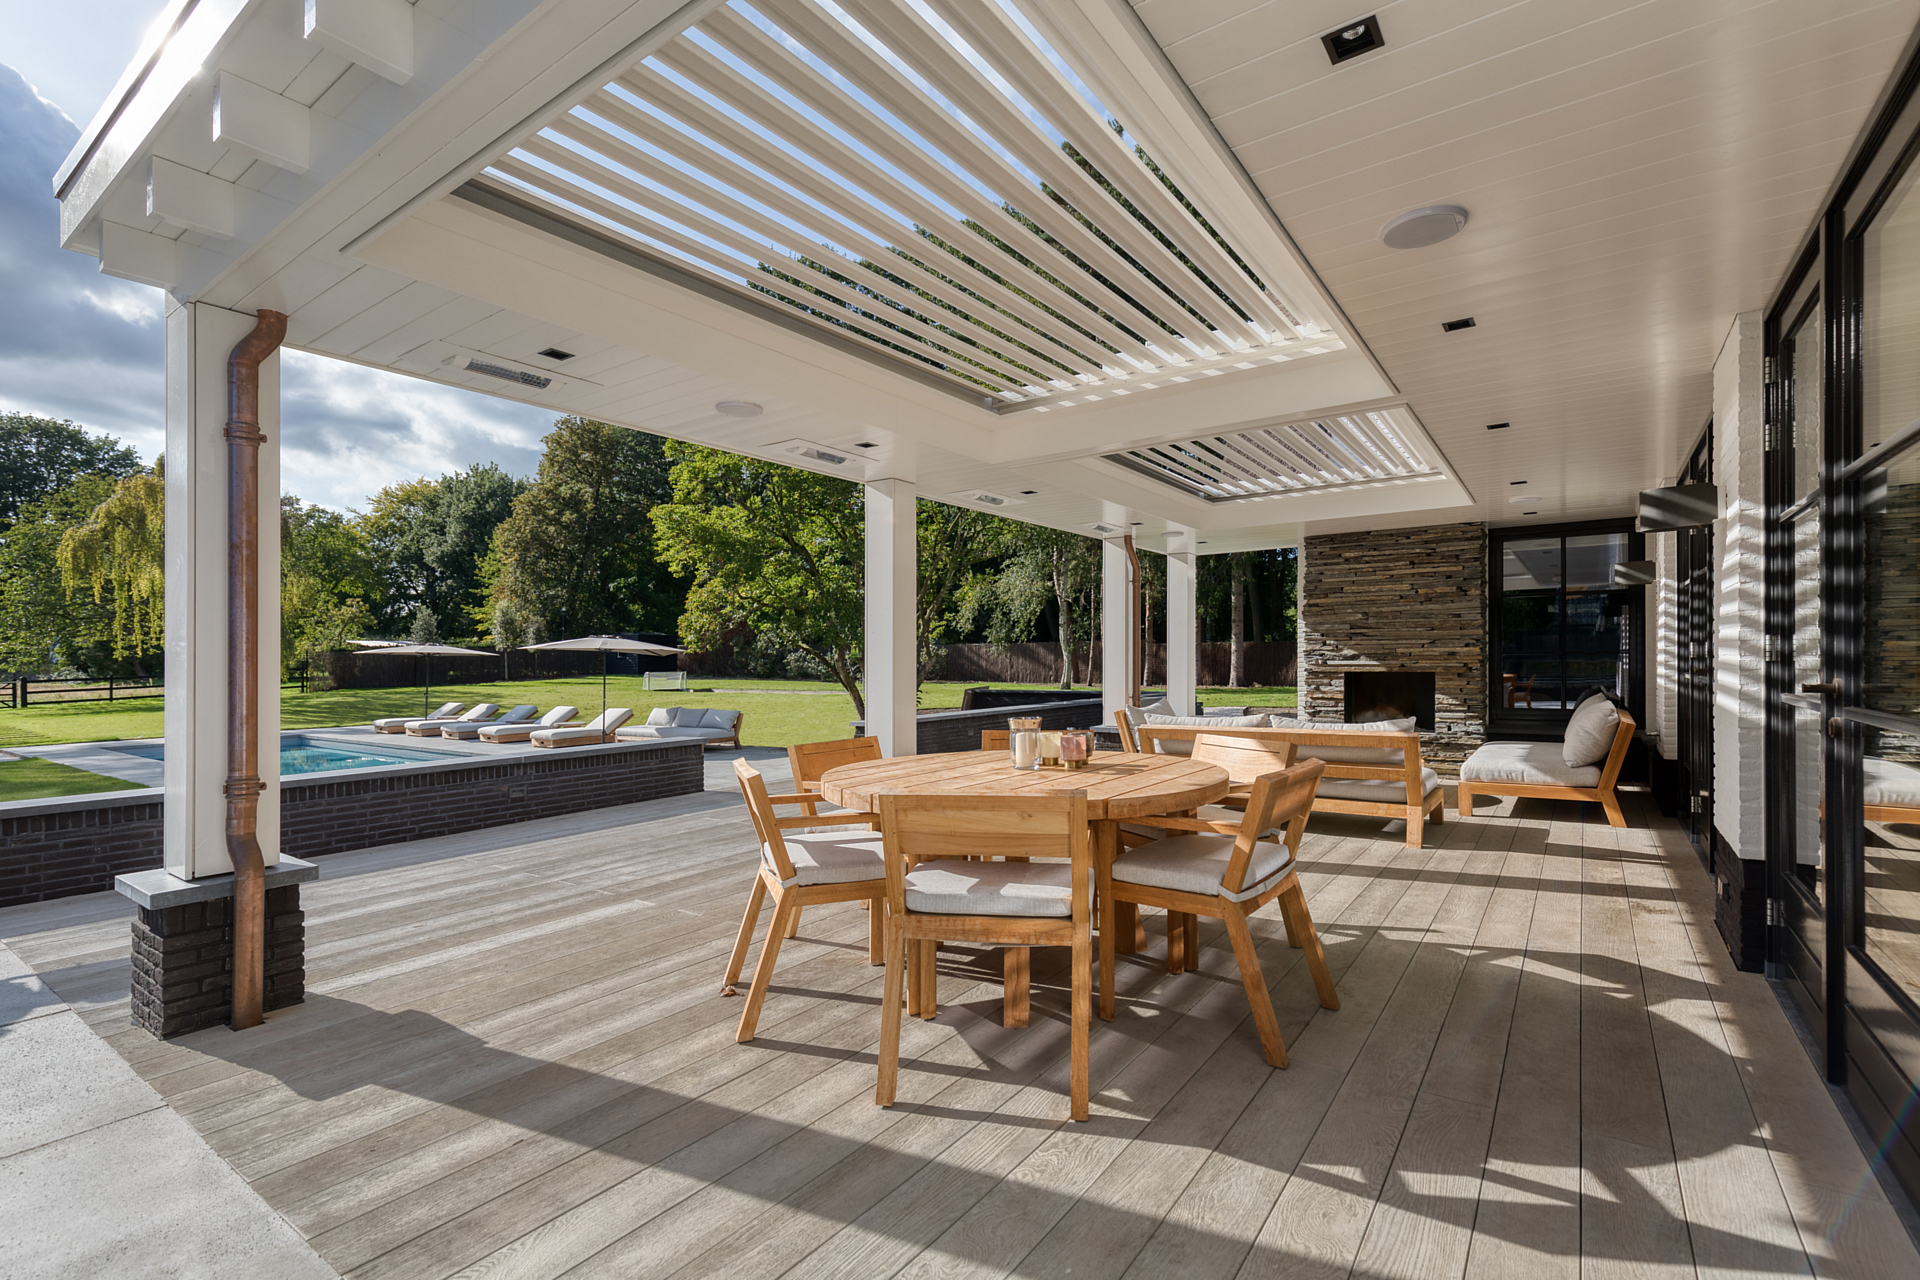 a backyard deck with sunbathed wood and overhanging automatic shutters looking out over the pool